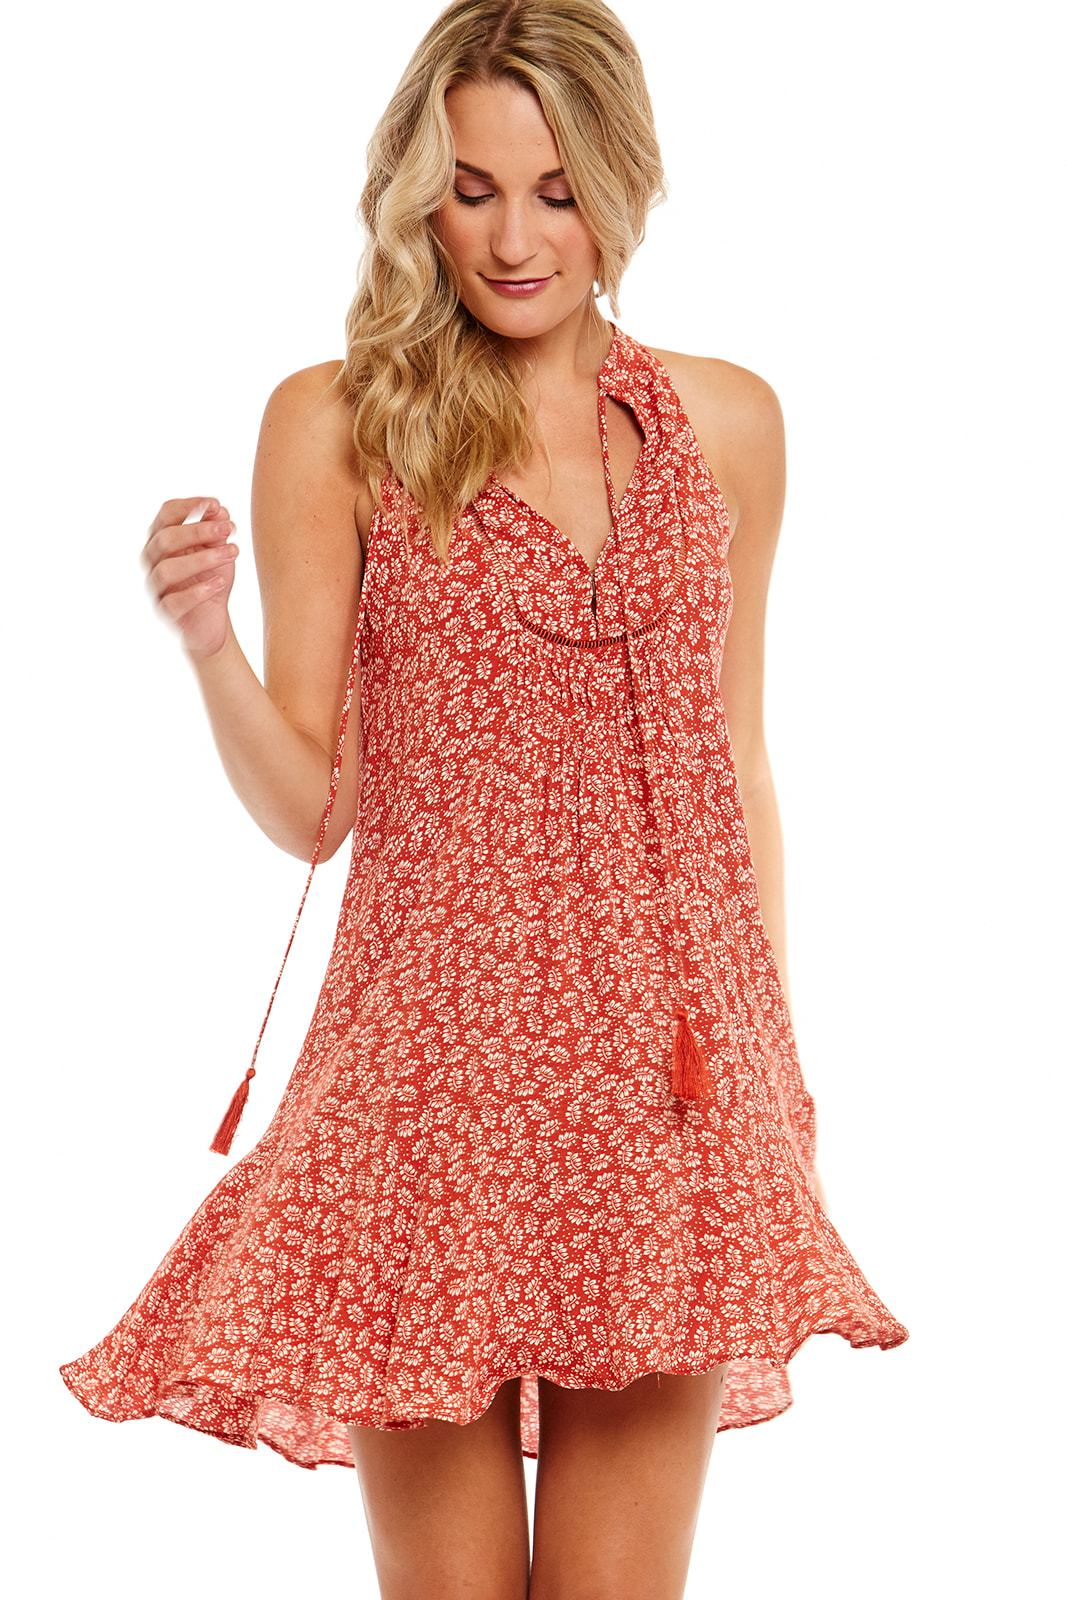 fab'rik - EVERLYN PRINTED DRESS ProductImage-13305559089210